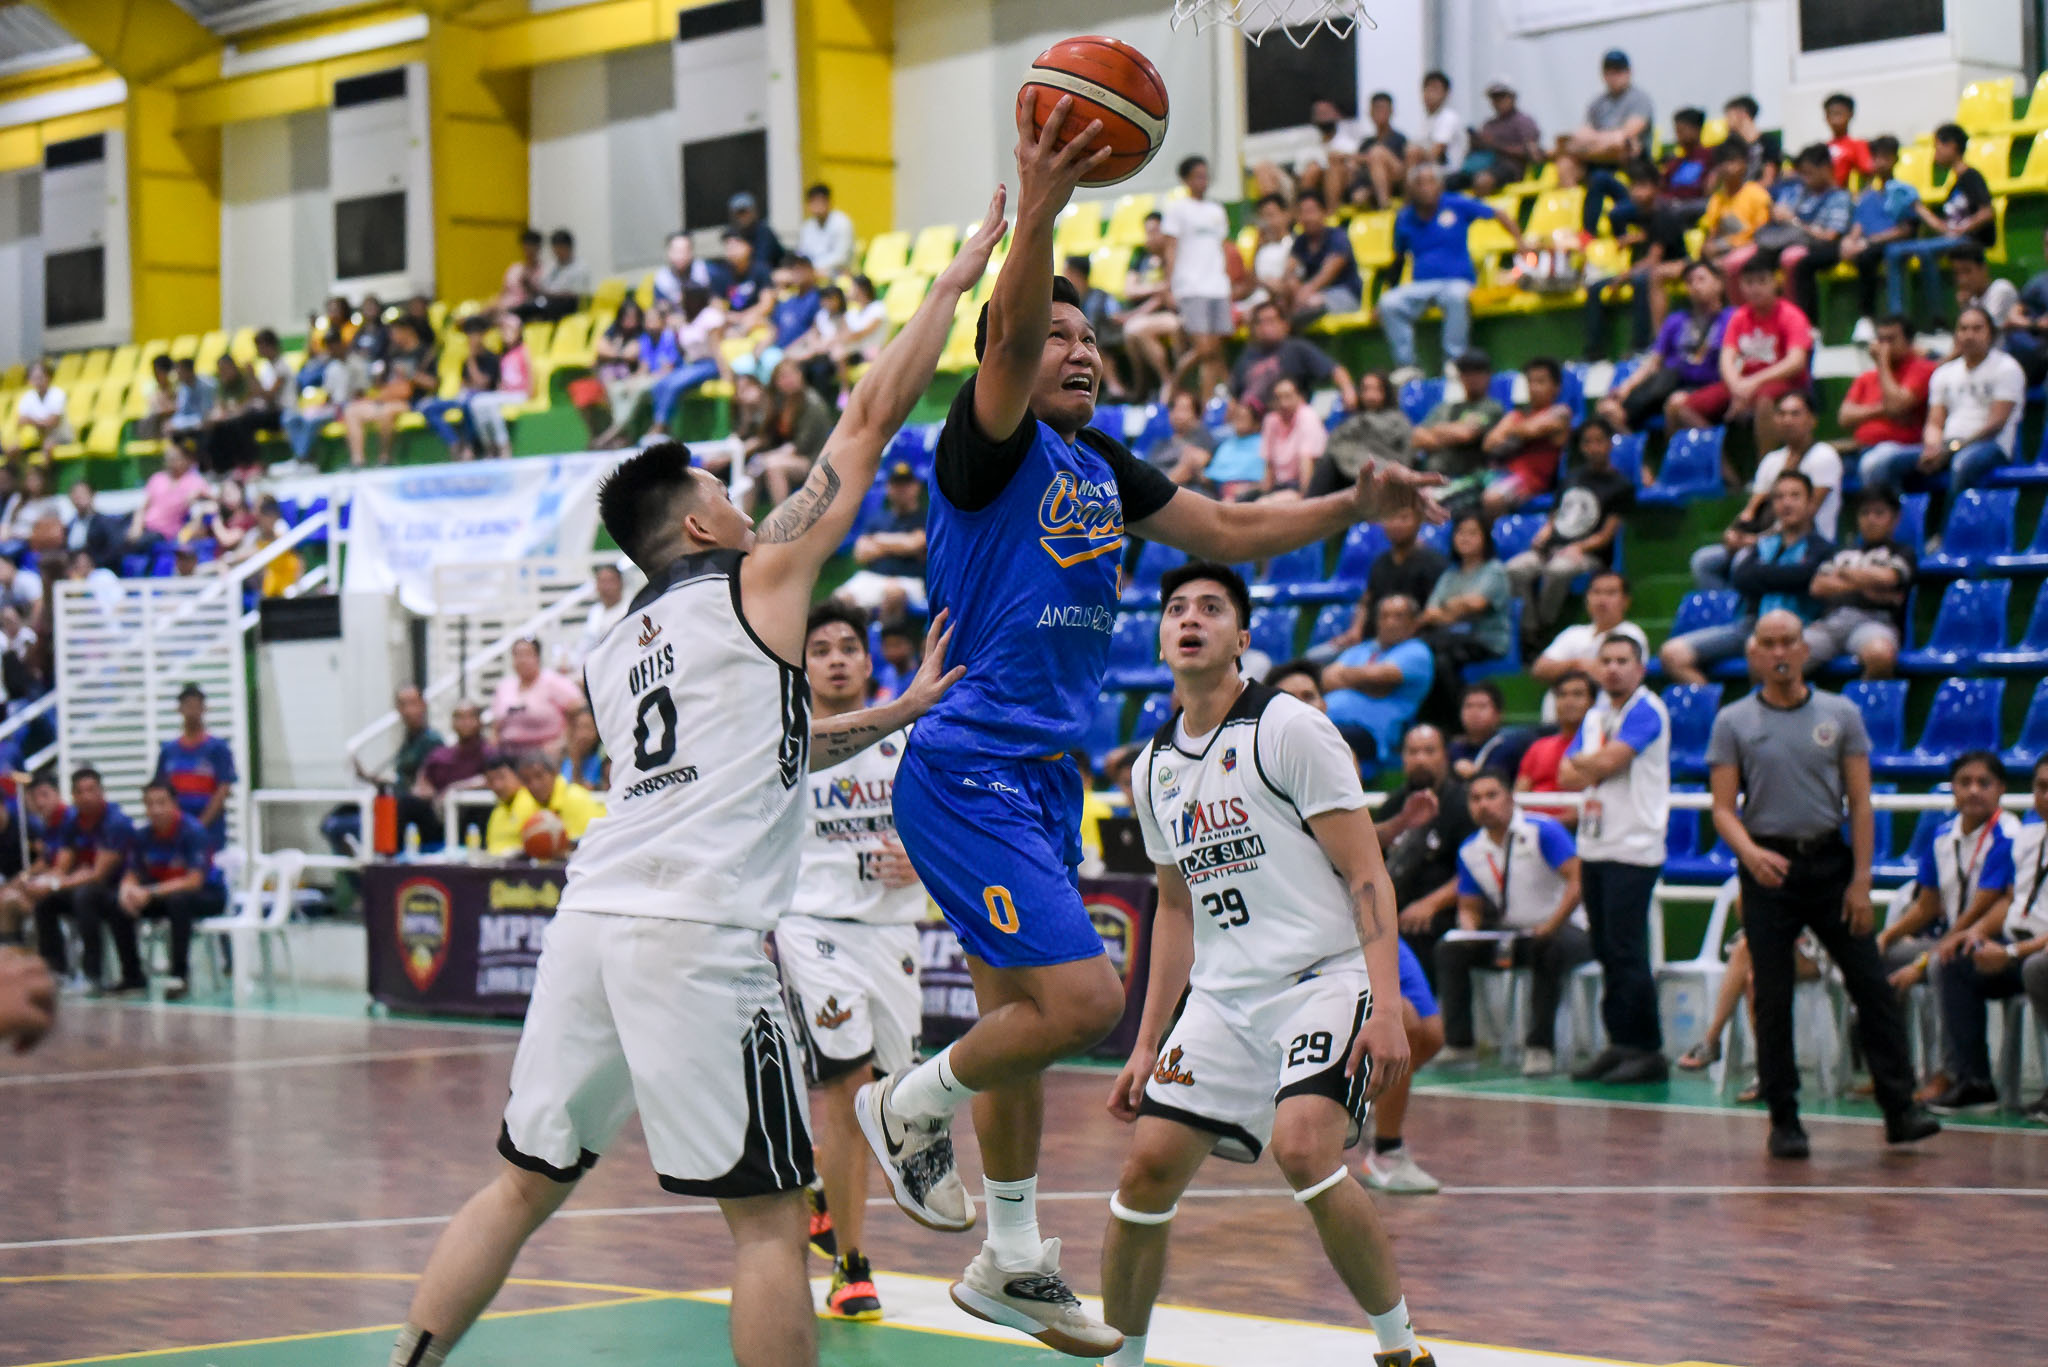 Tiebreaker Times Muntinlupa keeps slim MPBL playoff hopes alive, staves off Imus Basketball MPBL News  Paeng Rebugio Muntinlupa Cagers JR Cawaling Jeric Nacpil Jayjay Helterbrand Jamil Ortuoste Imus Bandera Dave Moralde Chico Tirona 2019-20 MPBL Lakan Cup